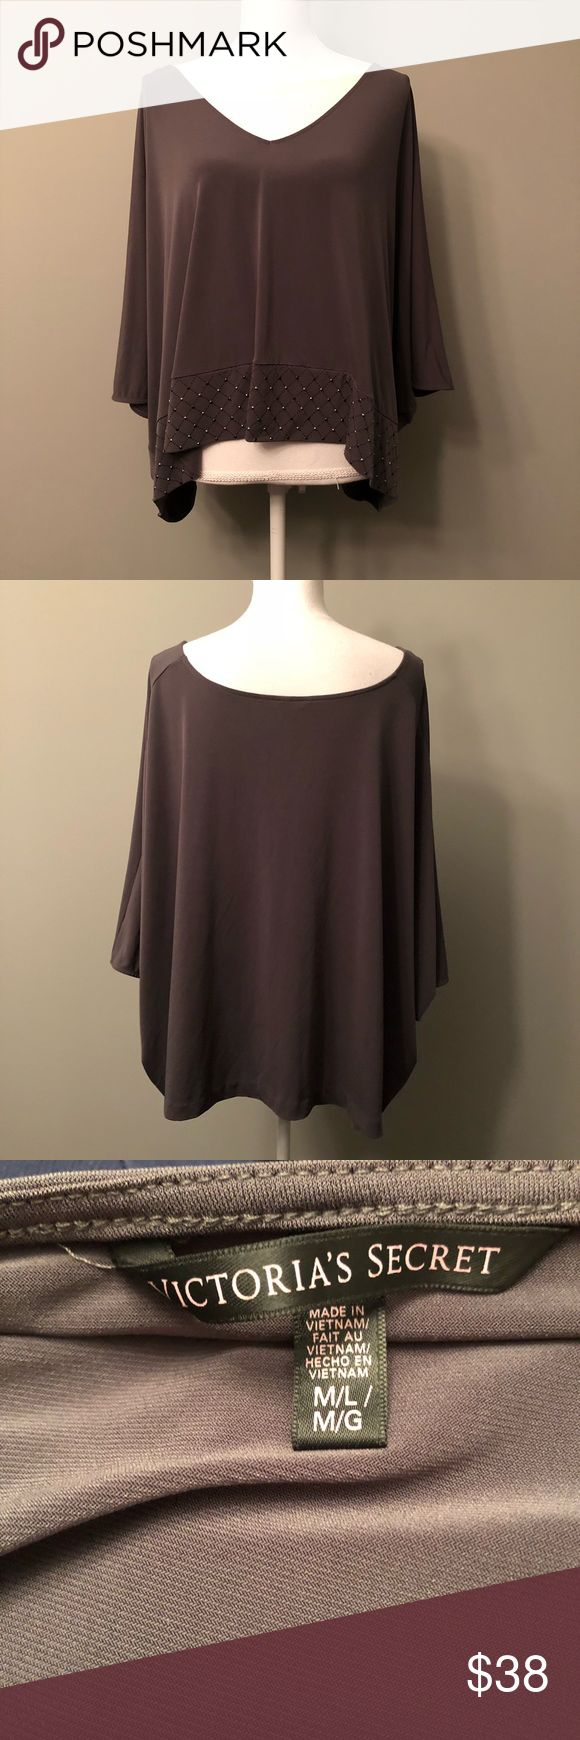 Victoria's Secret poncho shirt charcoal gray M/L Preowned in like new condition Victoria's Secret top size medium/large. A dark charcoal color. Dolman , poncho style. Some bling on the bottom hem in front only. Slouchy loose fit . Beautiful top.  No stains , snags or wear  Smoke free / pet free  Measurements are not available being the fit of the top. Victoria's Secret Tops